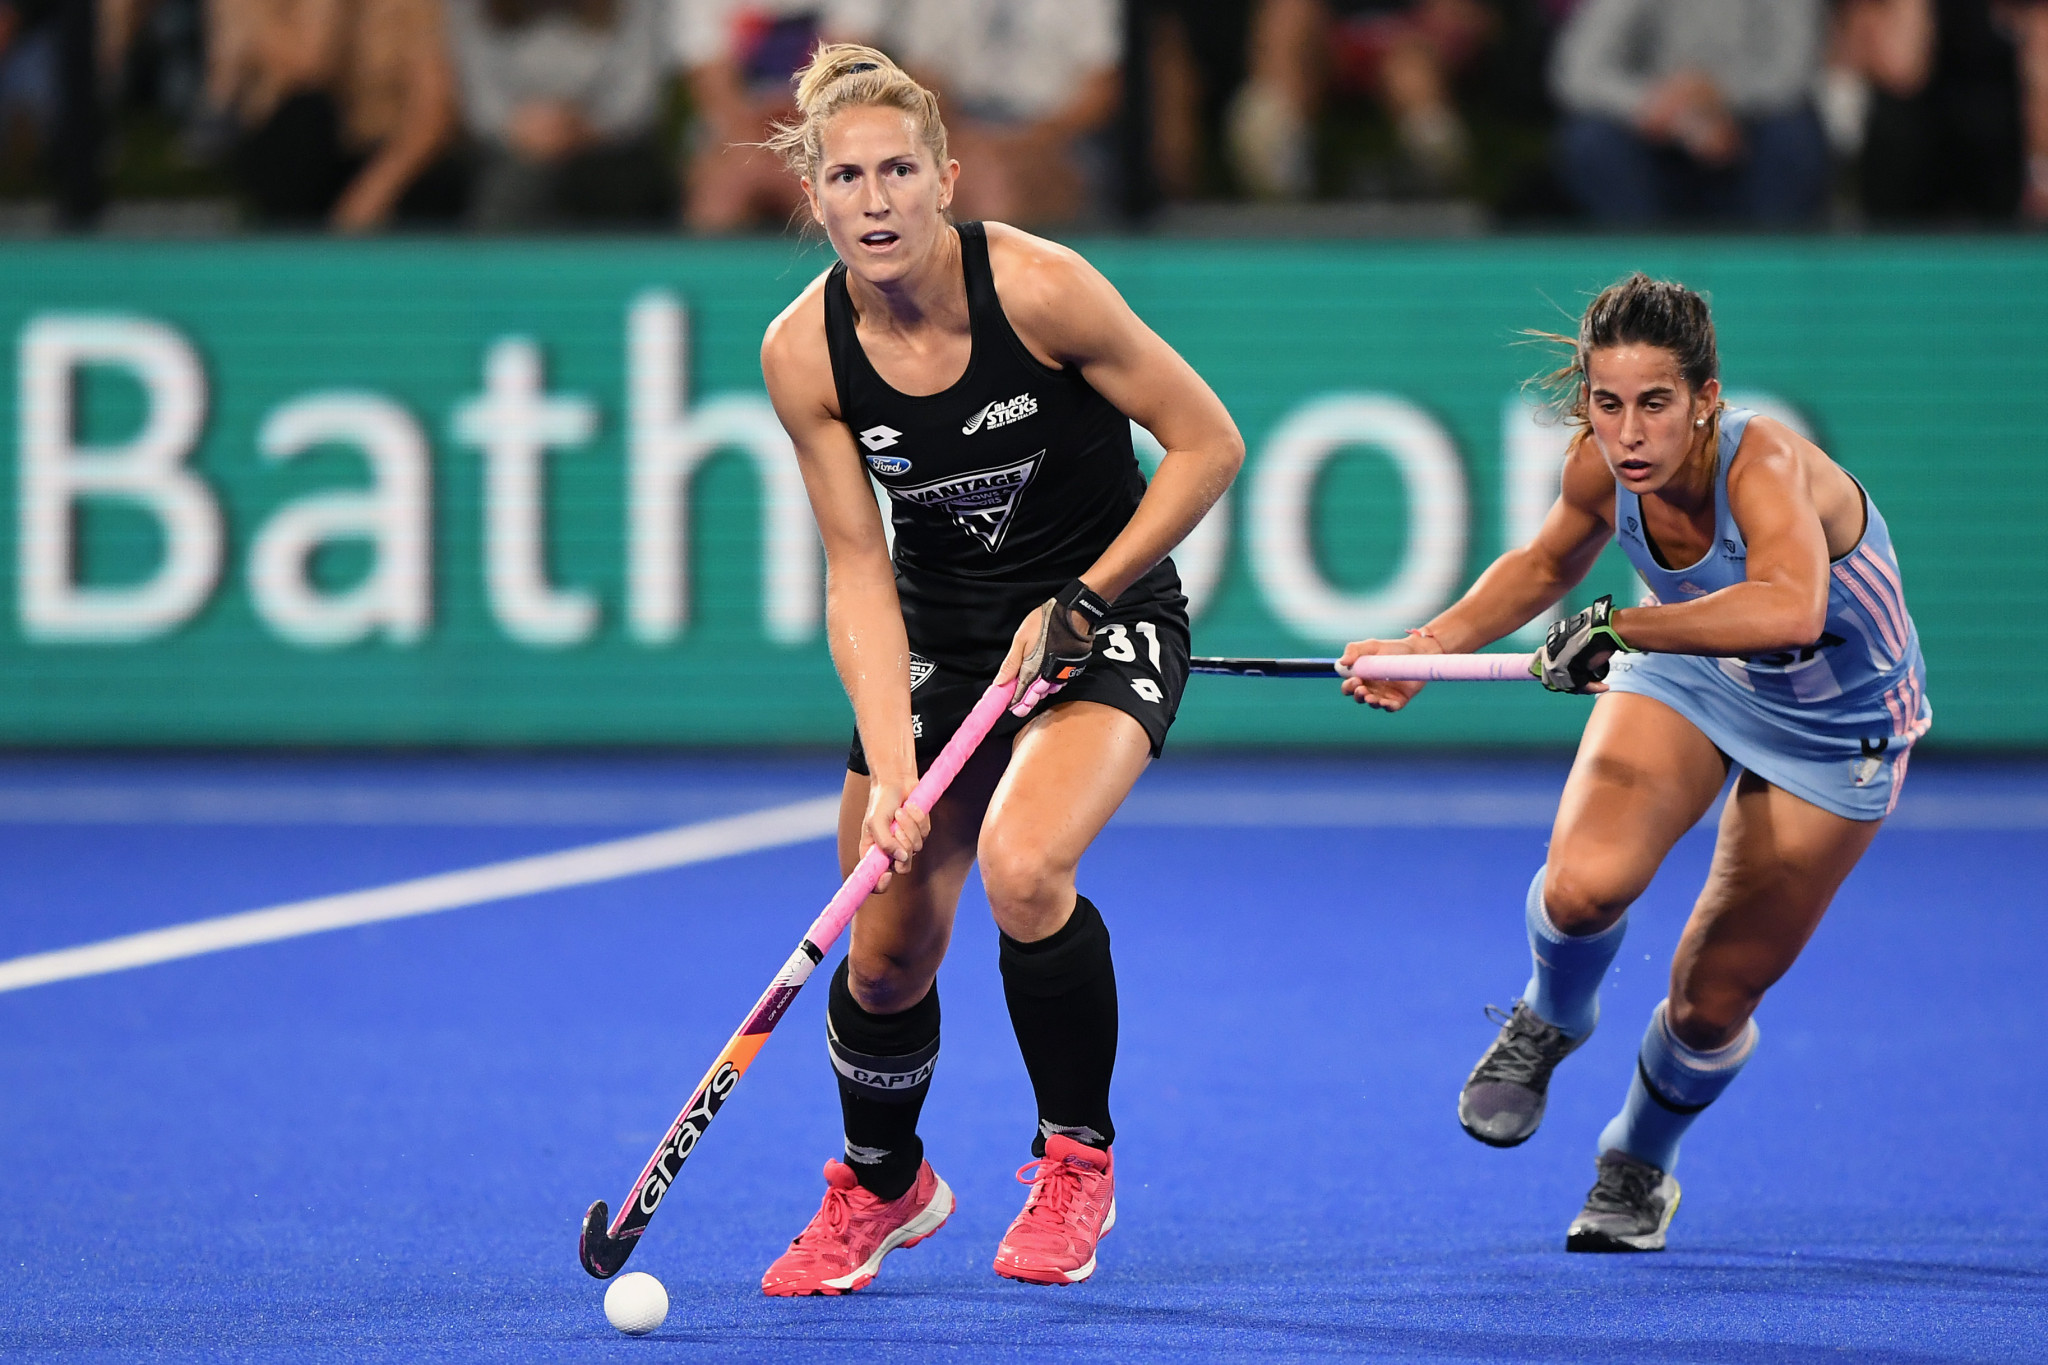 FIH Executive Board approve reviewed gender equality policy